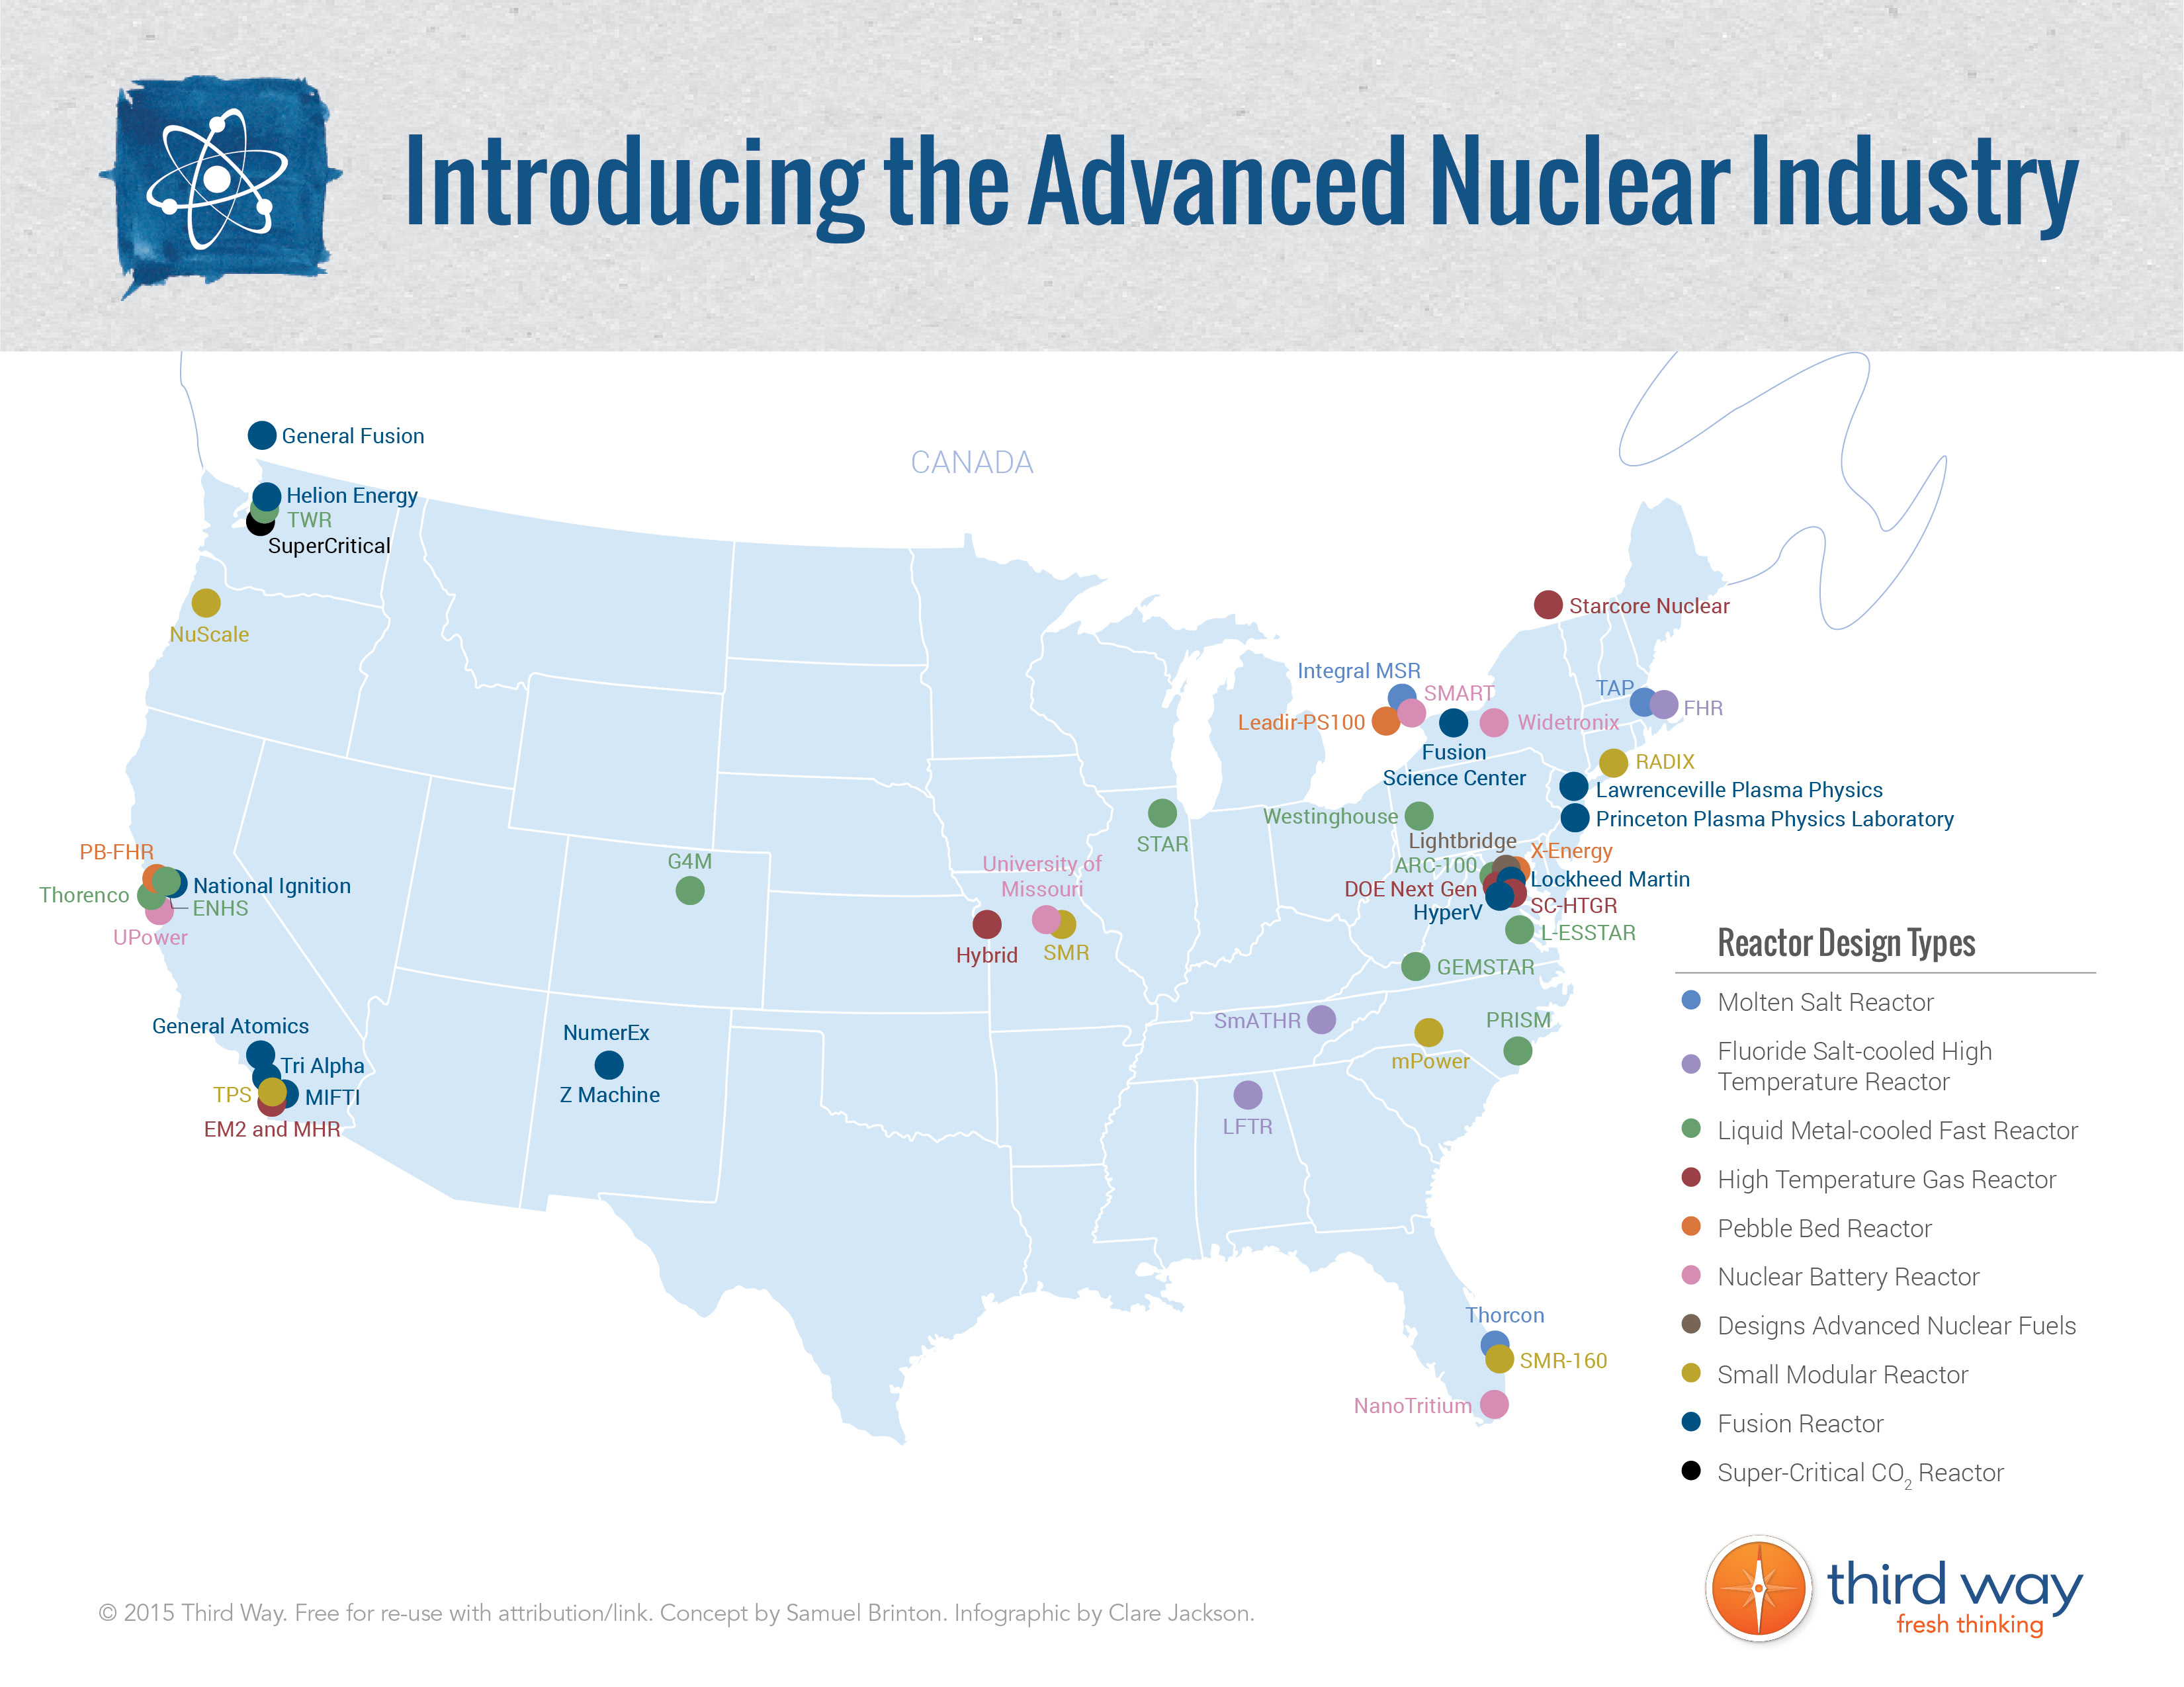 Introducing the Advanced Nuclear Industry